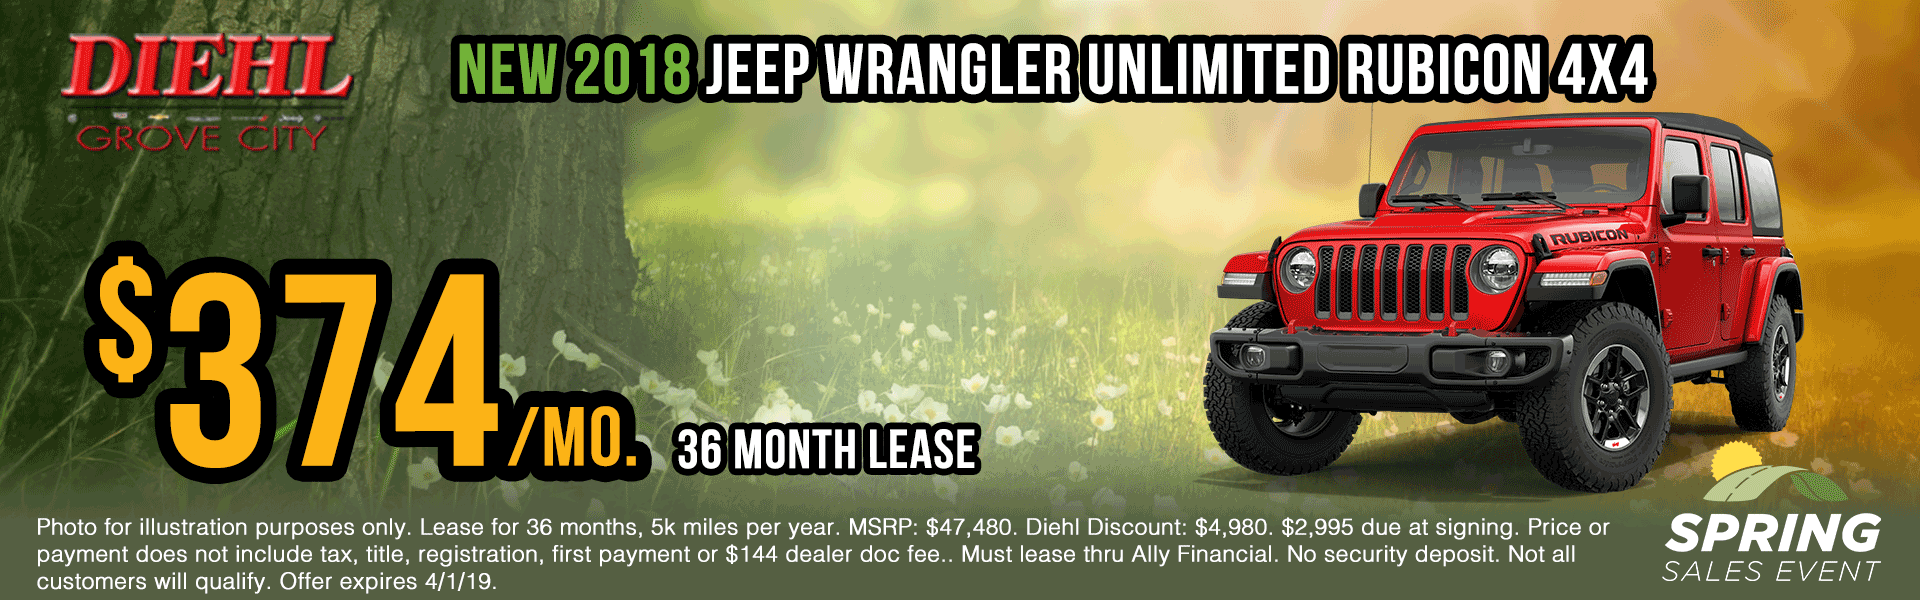 J1243-2018-jeep-wrangler-unlimited-rubicon Spring sales event jeep specials Chrysler specials ram specials dodge specials mopar specials new vehicle specials Diehl automotive Diehl Robinson Diehl of grove city specials lease specials